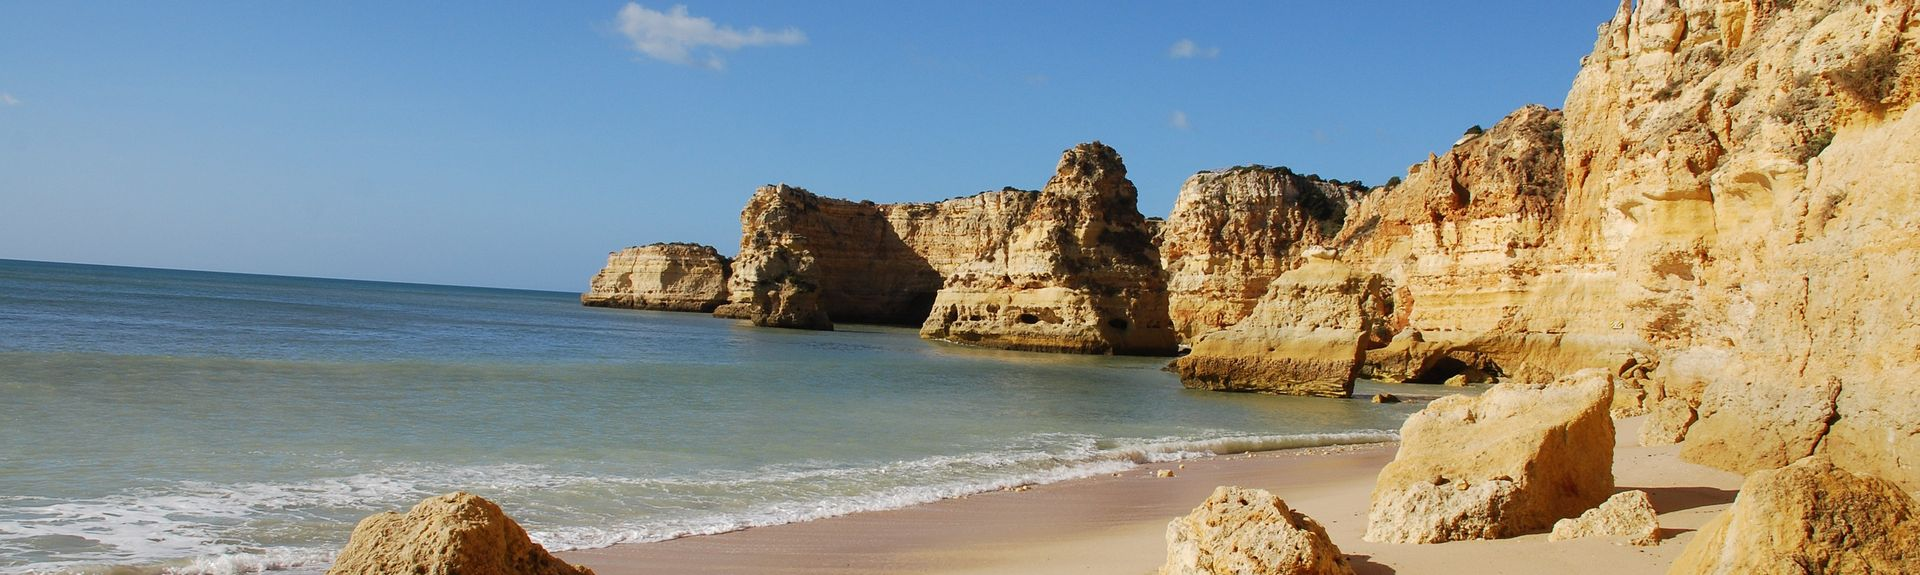 Benagil, Carvoeiro, Faro District, Portugal